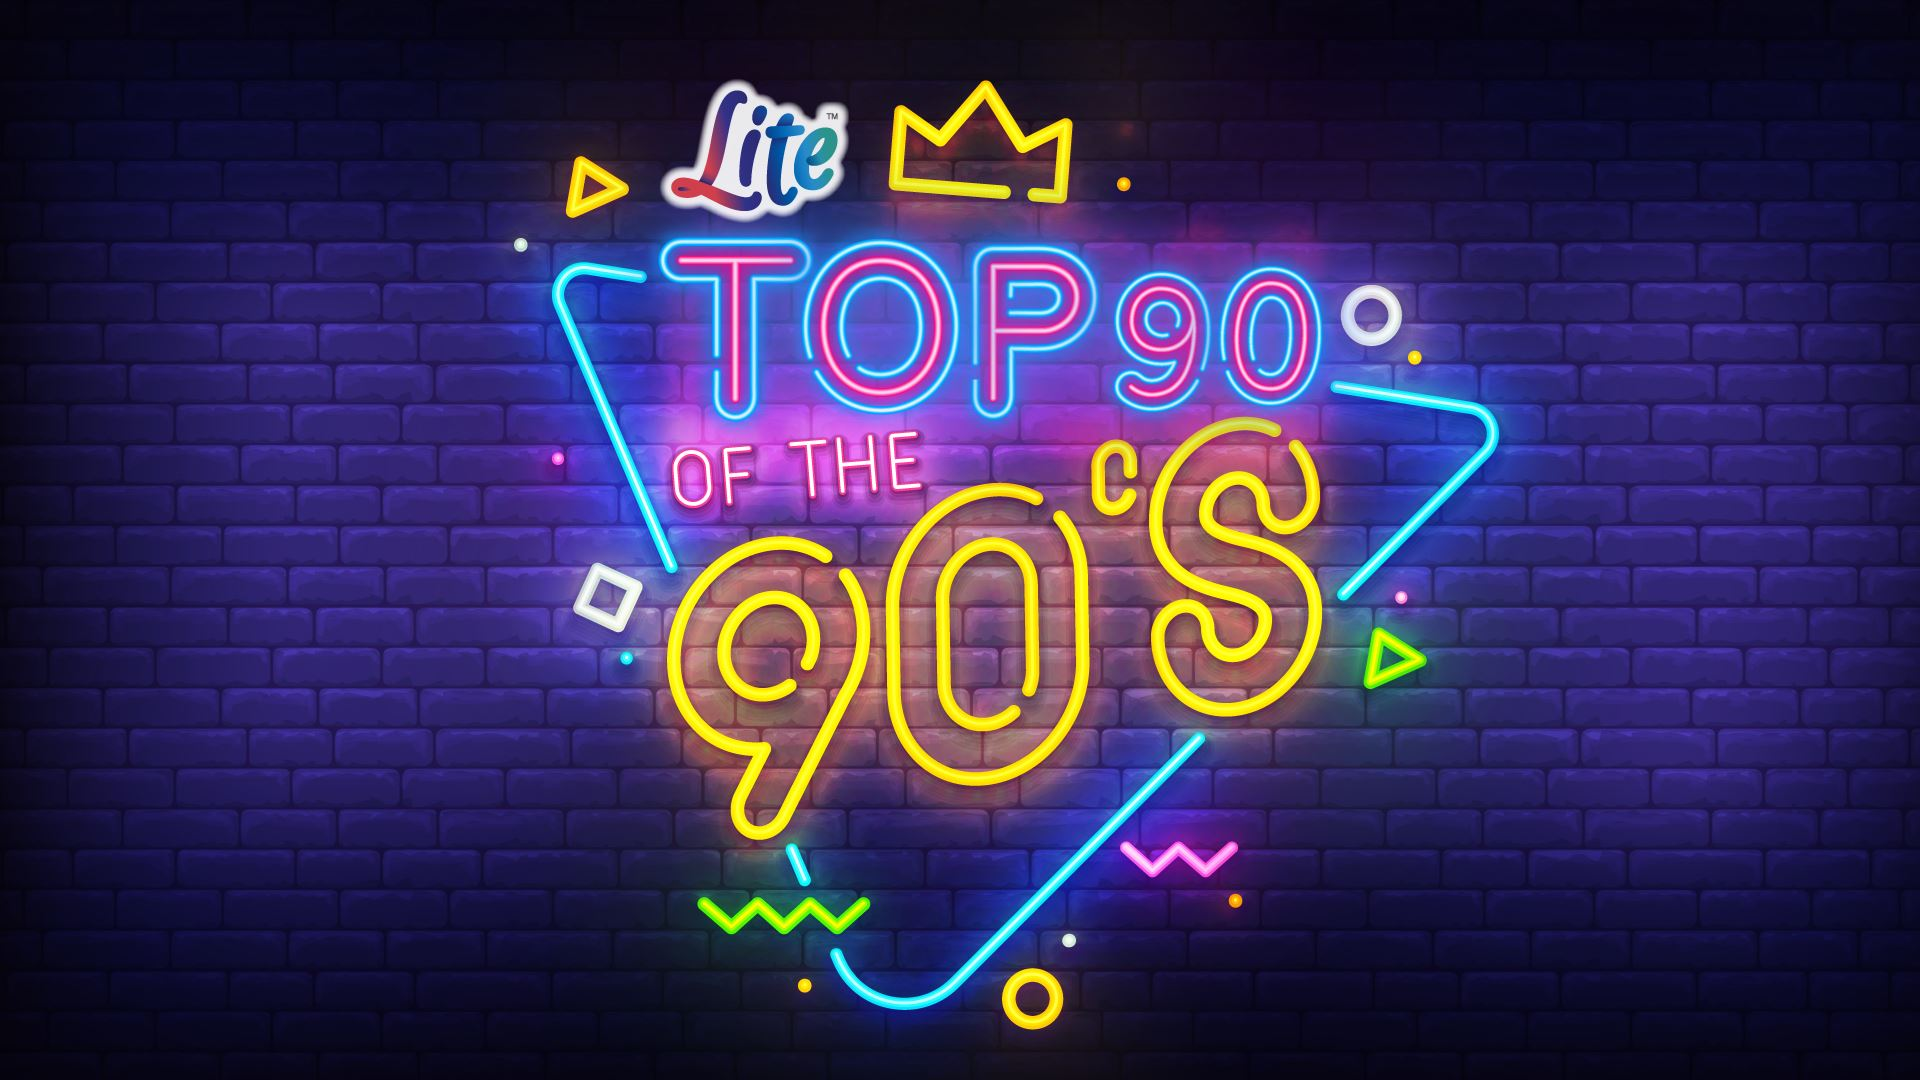 Top 90 of the 90s